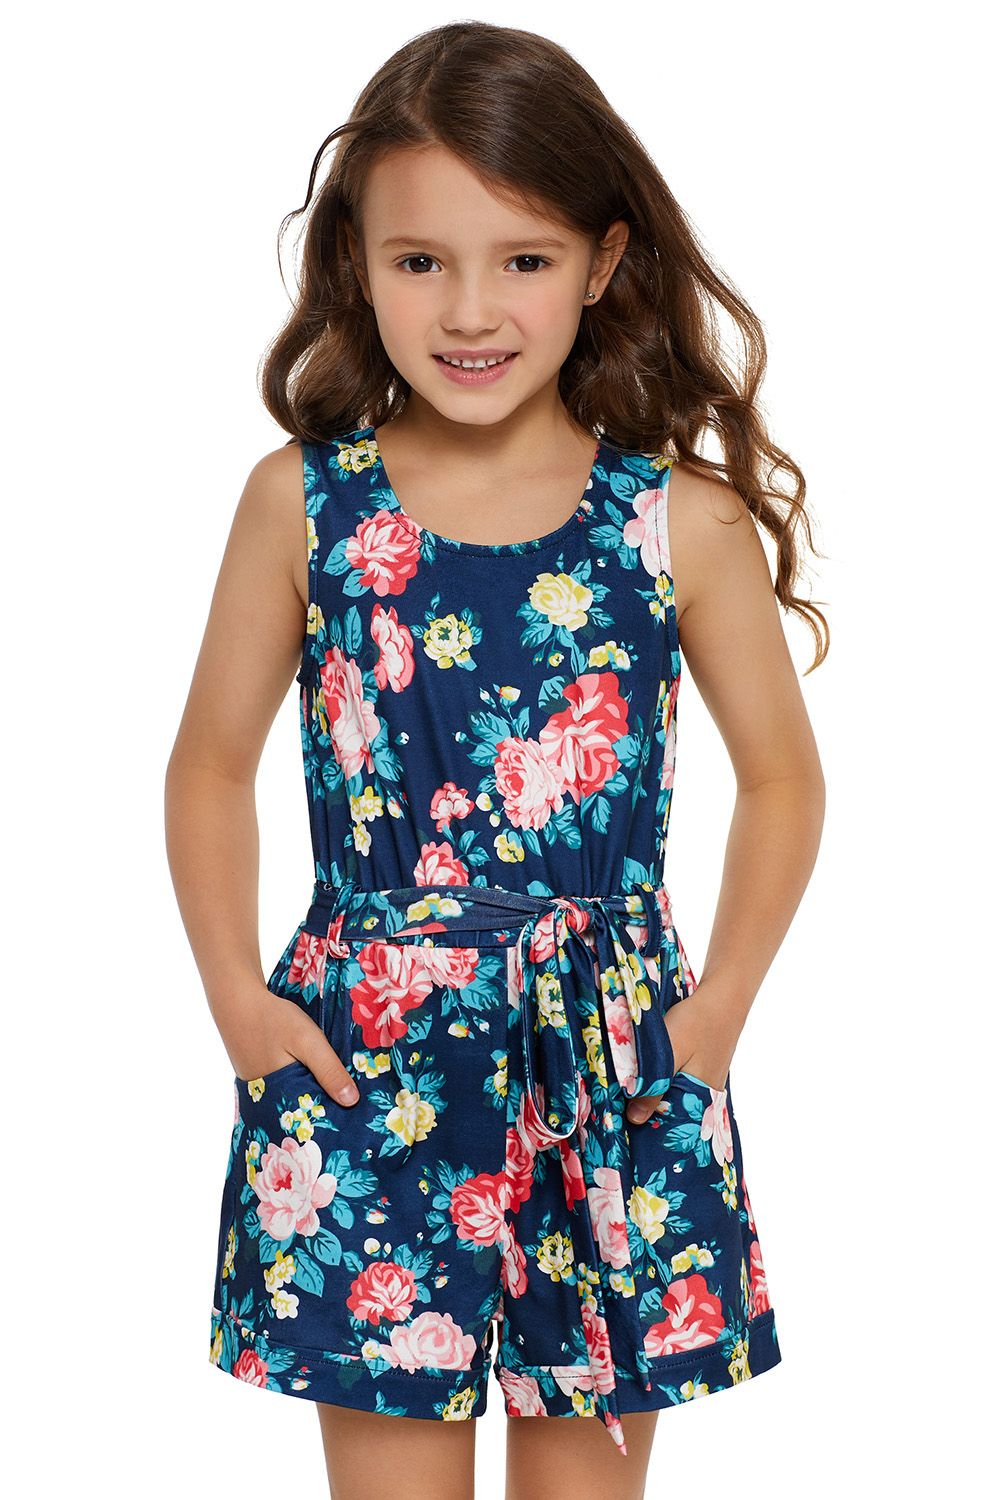 Blue Floral Romper For Little Girls | Girls rompers, Rompers, Kids outfits  girls